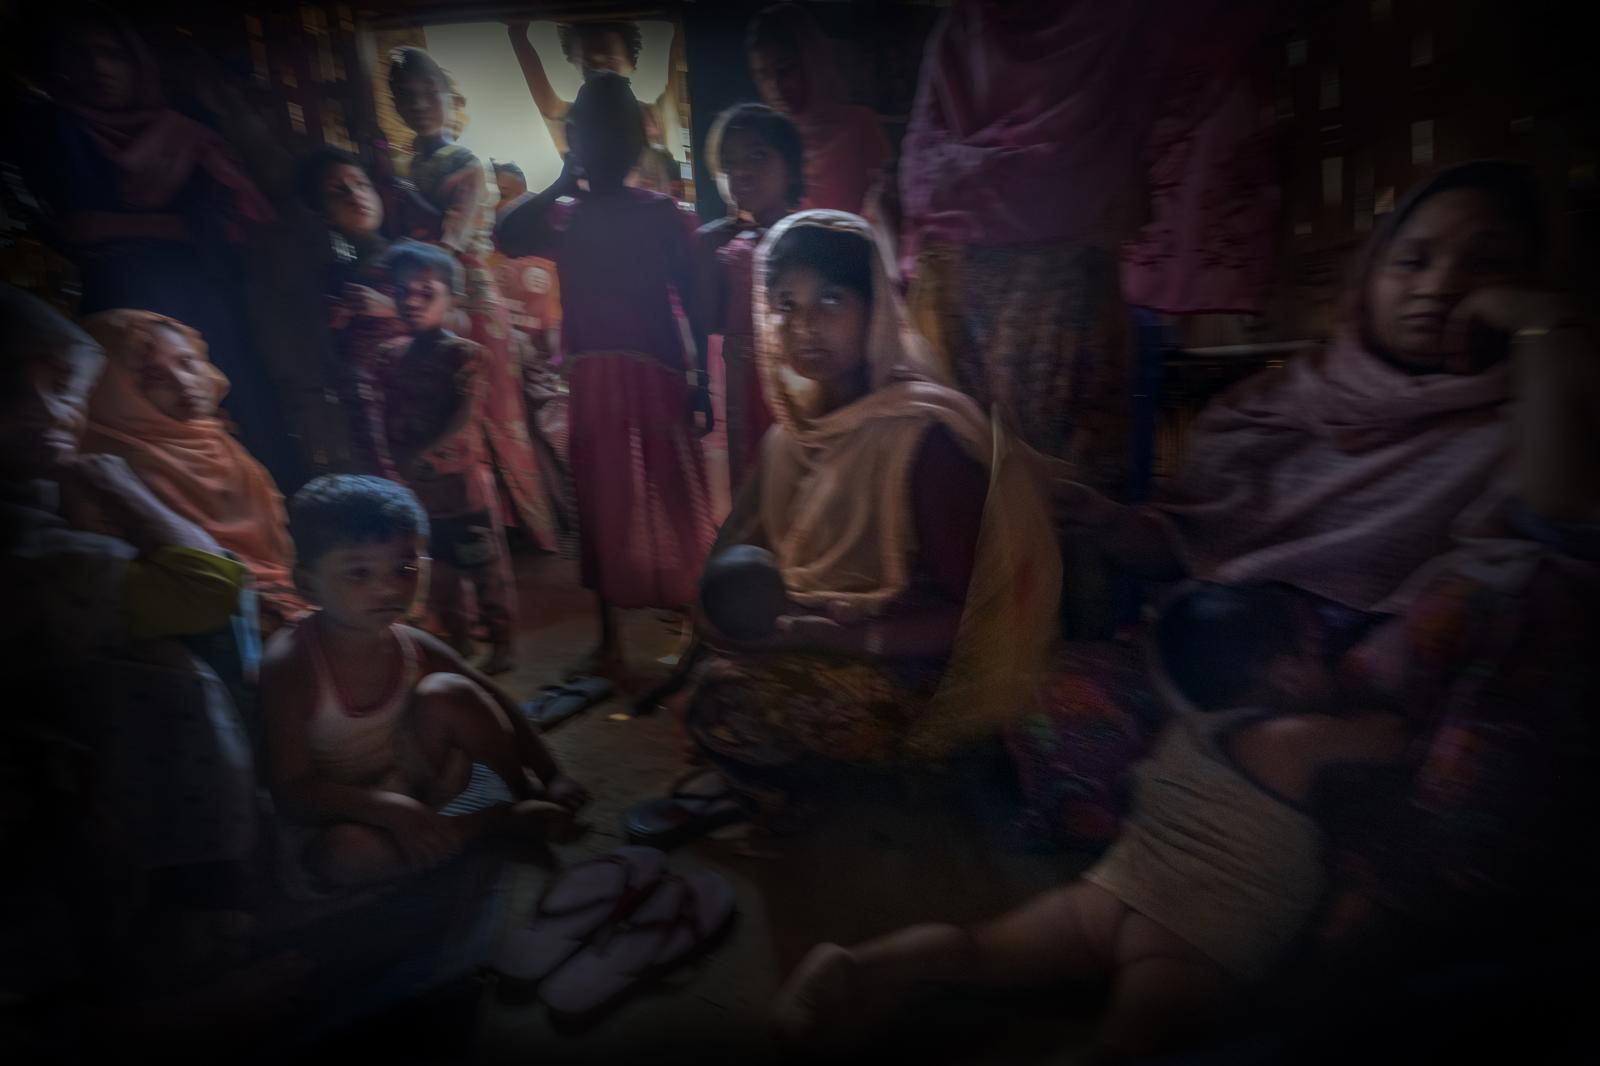 Rohingya refugees in Bangladesh, in Kutupalong refugee camp. There are currently more than a million refugees in this country, and more than 25,000 false passports have been found, which are used to get them to Europe, as well as to other regions throughout the world (Bangladesh).